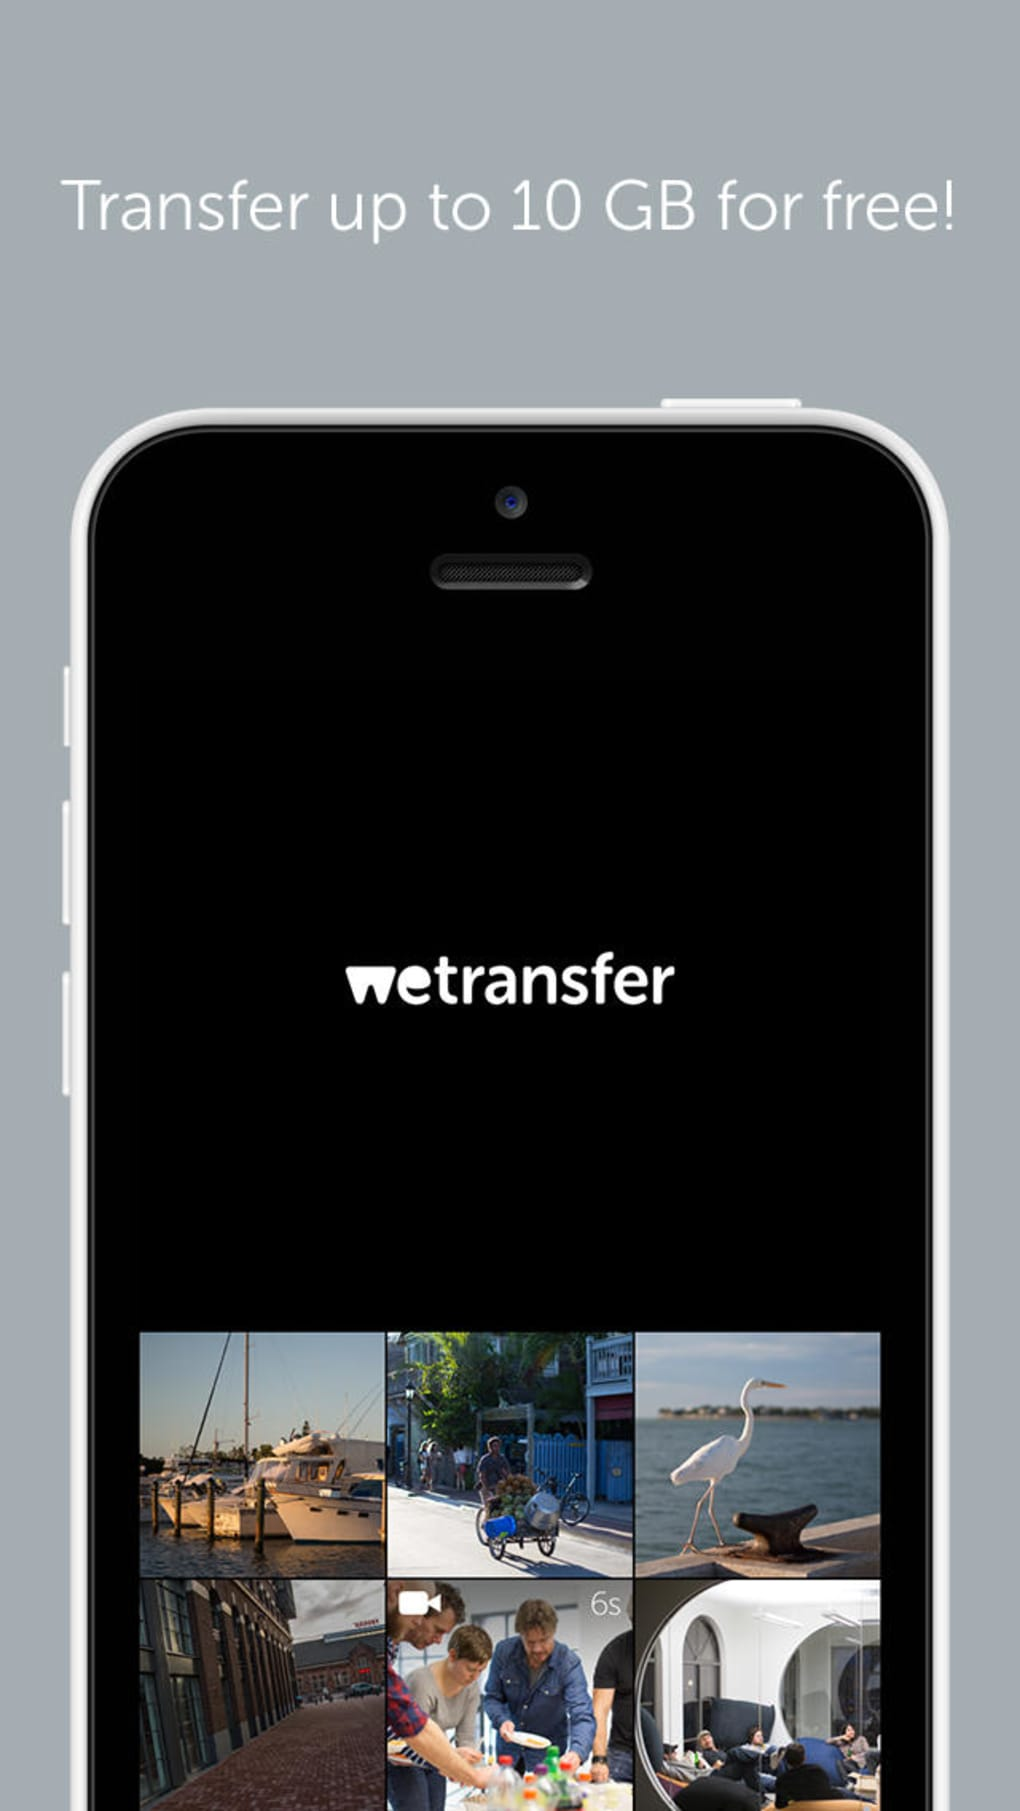 da wetransfer su iphone